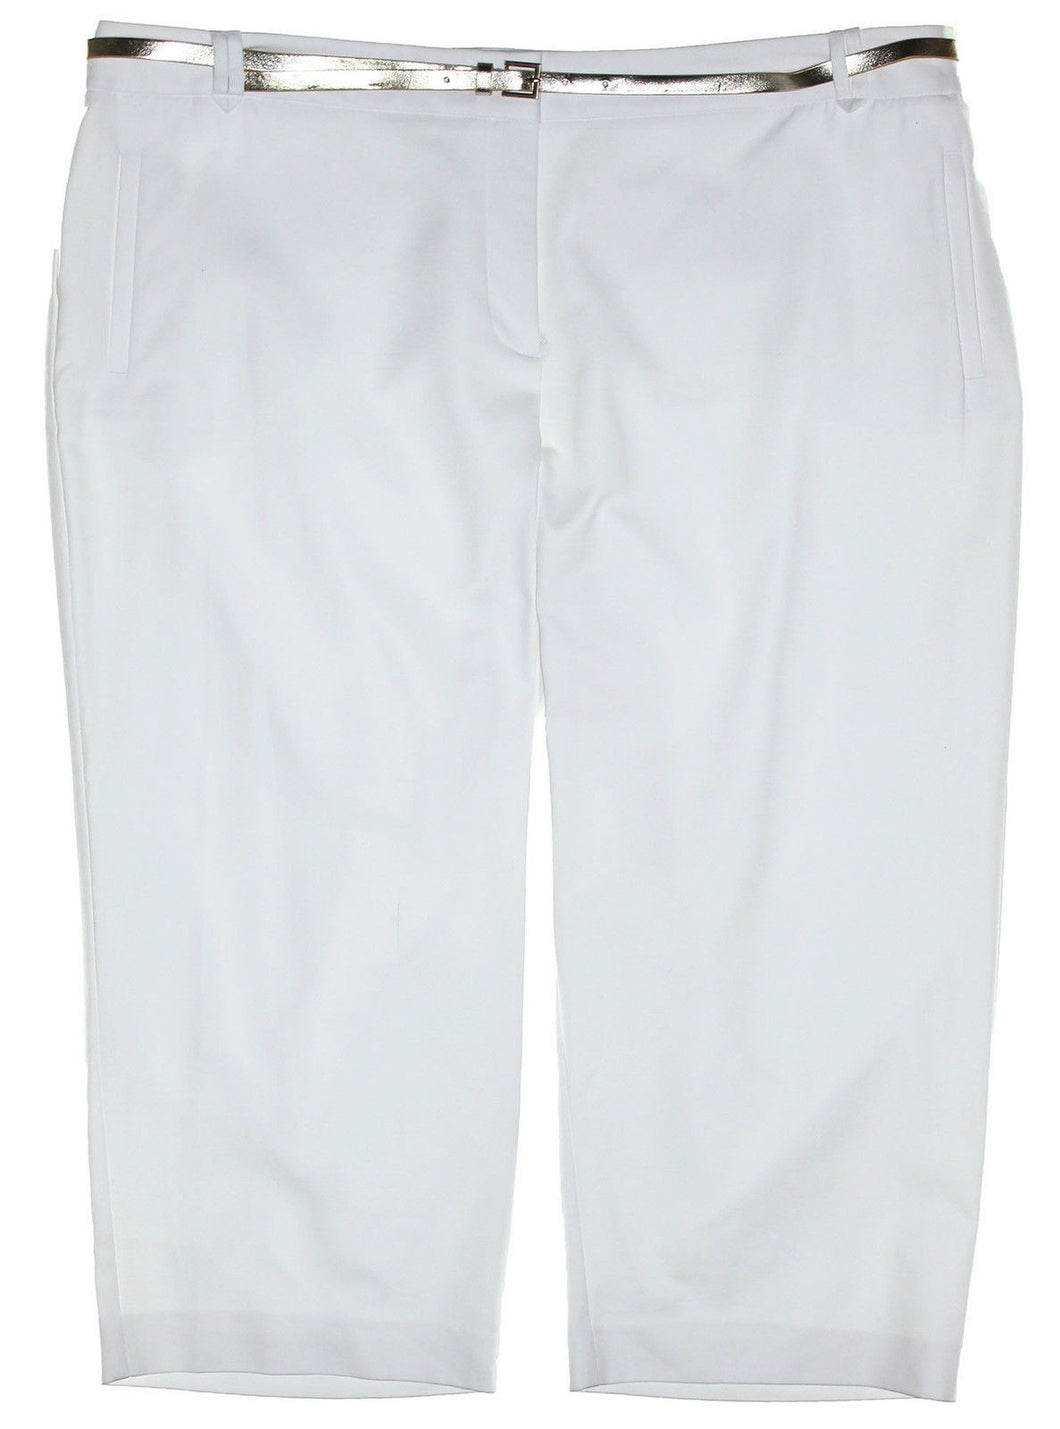 Charter Club White Tummy Slimming Classic Fit Belted Capri Pants